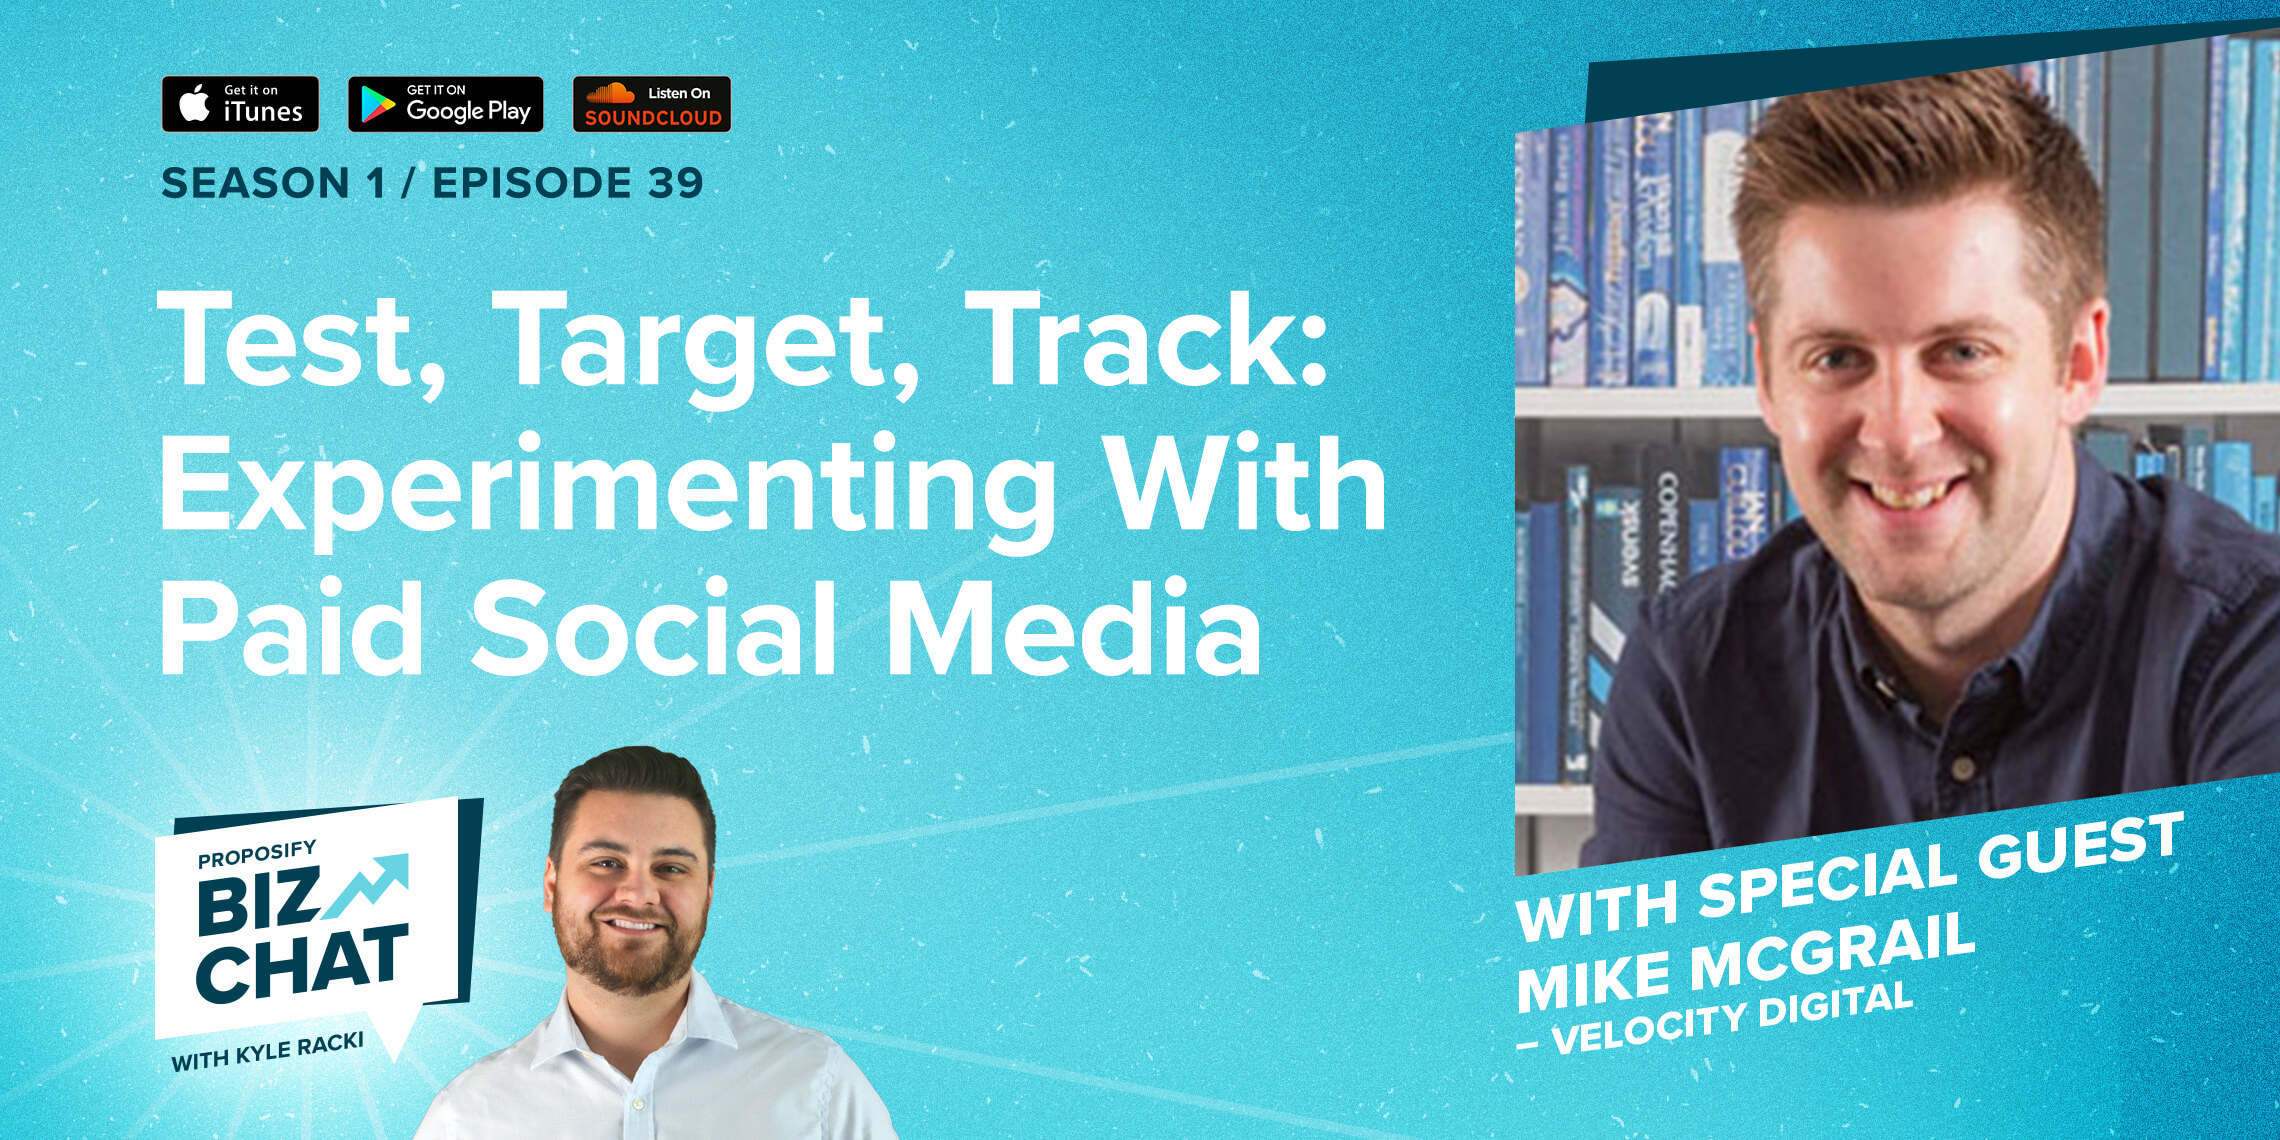 Test, Target, Track: Experimenting With Paid Social Media